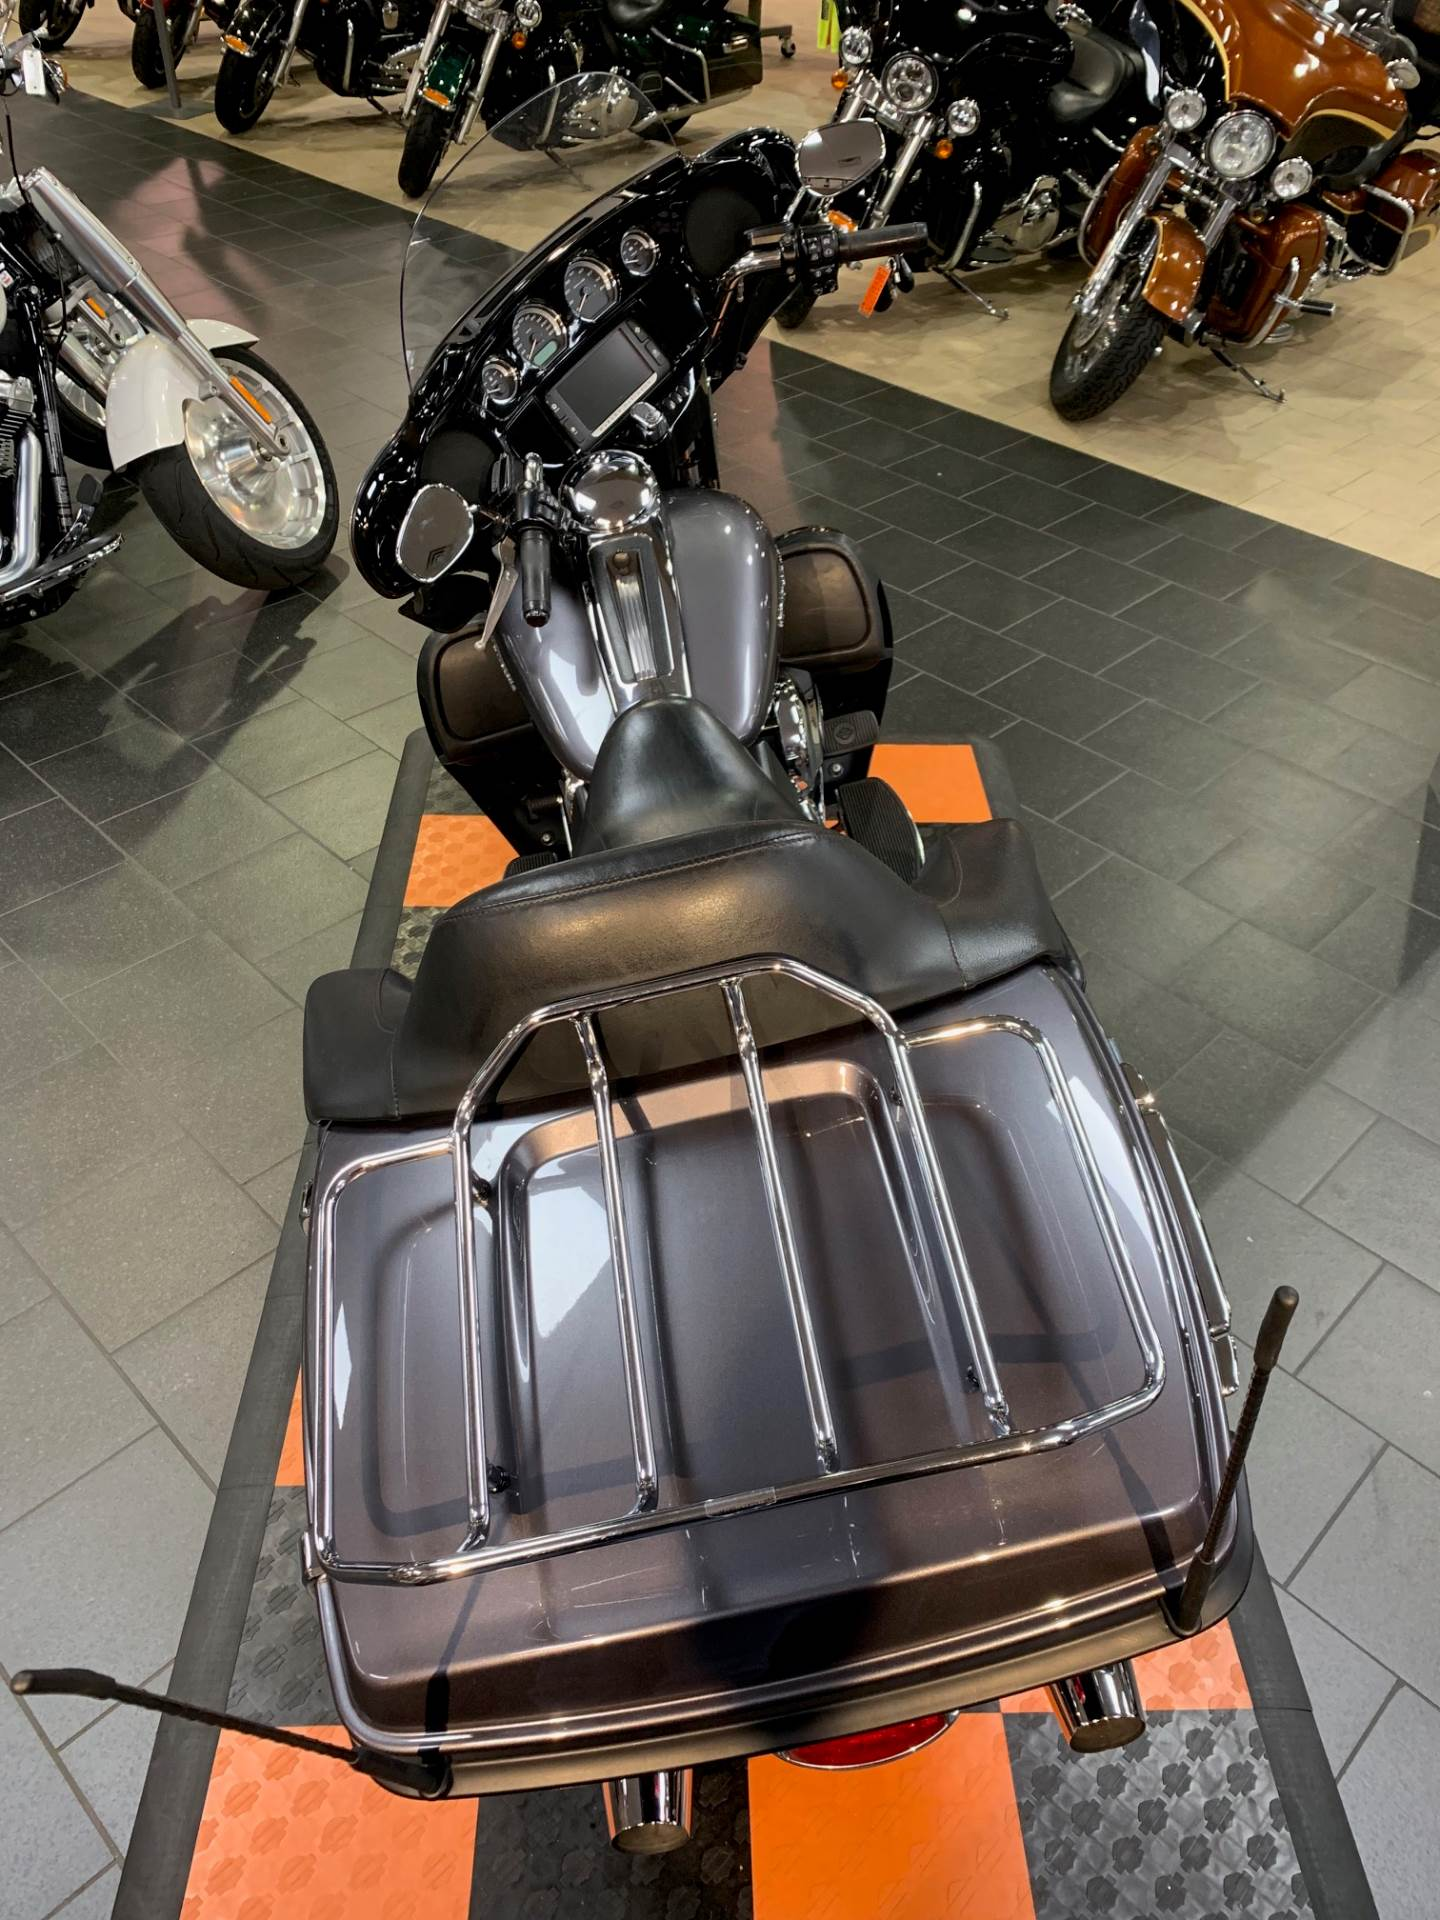 2014 Harley-Davidson Ultra Limited in The Woodlands, Texas - Photo 4